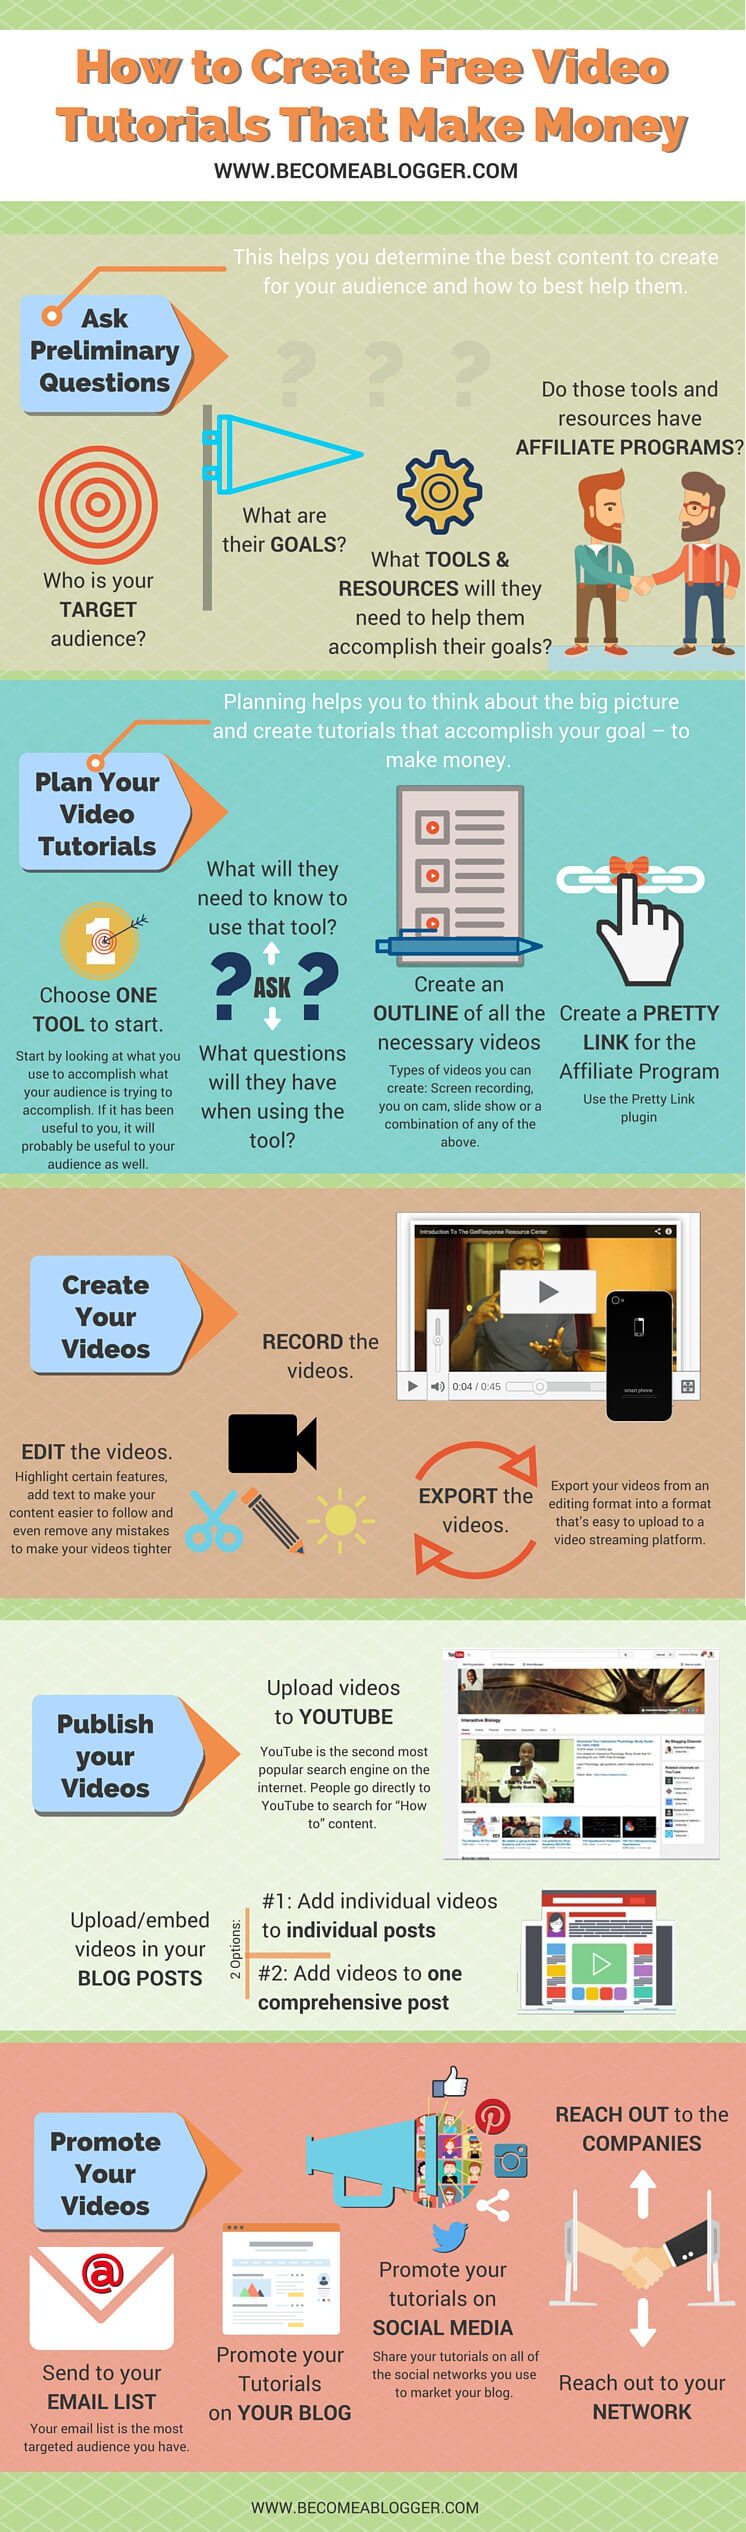 252_Video Tutorials_Infographic (1)